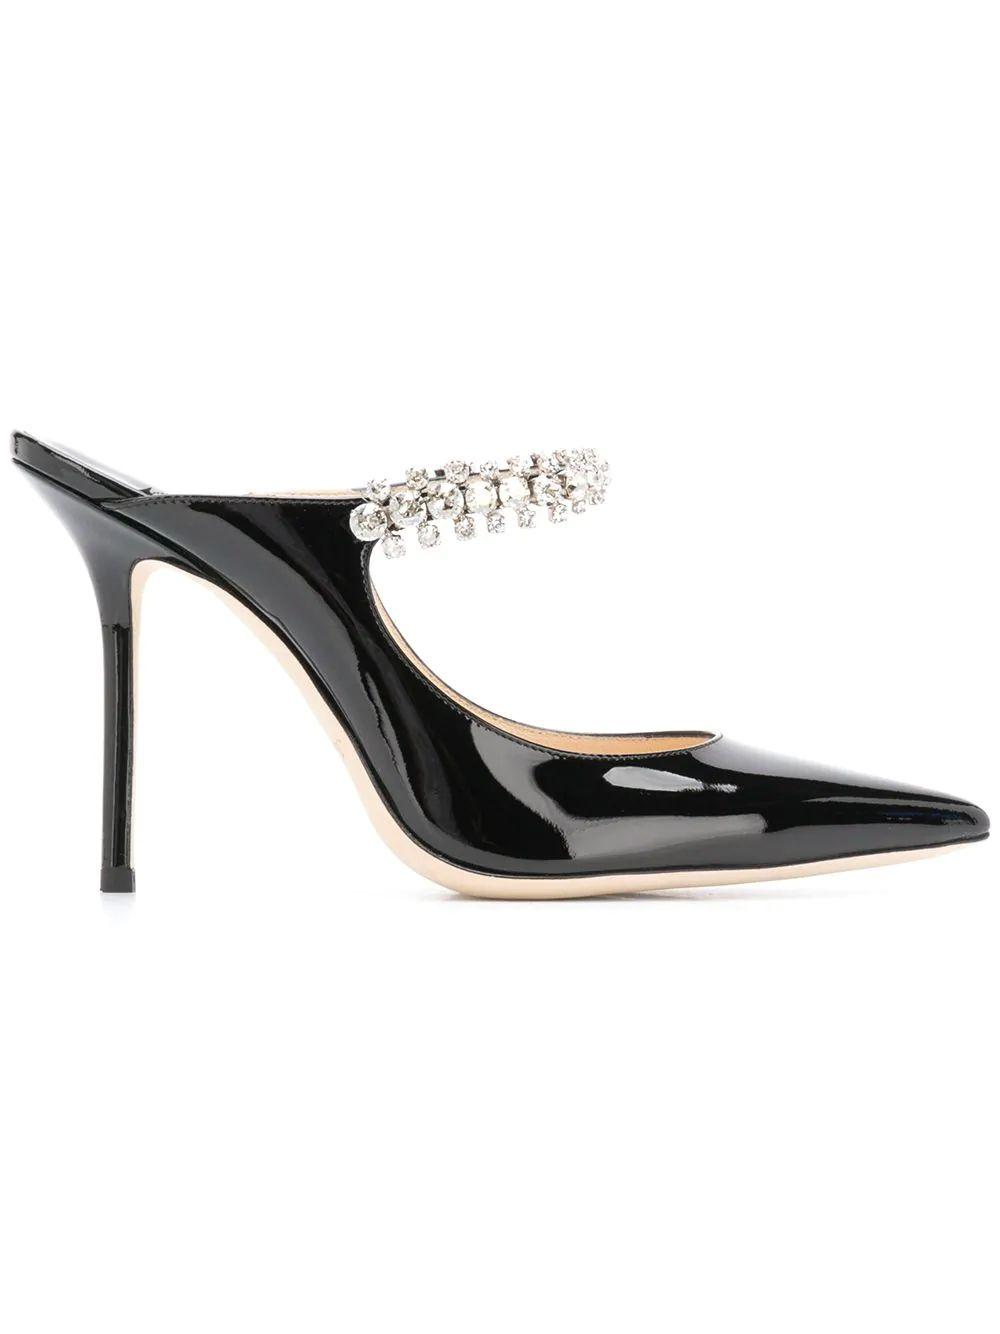 Patent 100mm Mule With Crystal Strap Item # BING100-PAT-R20